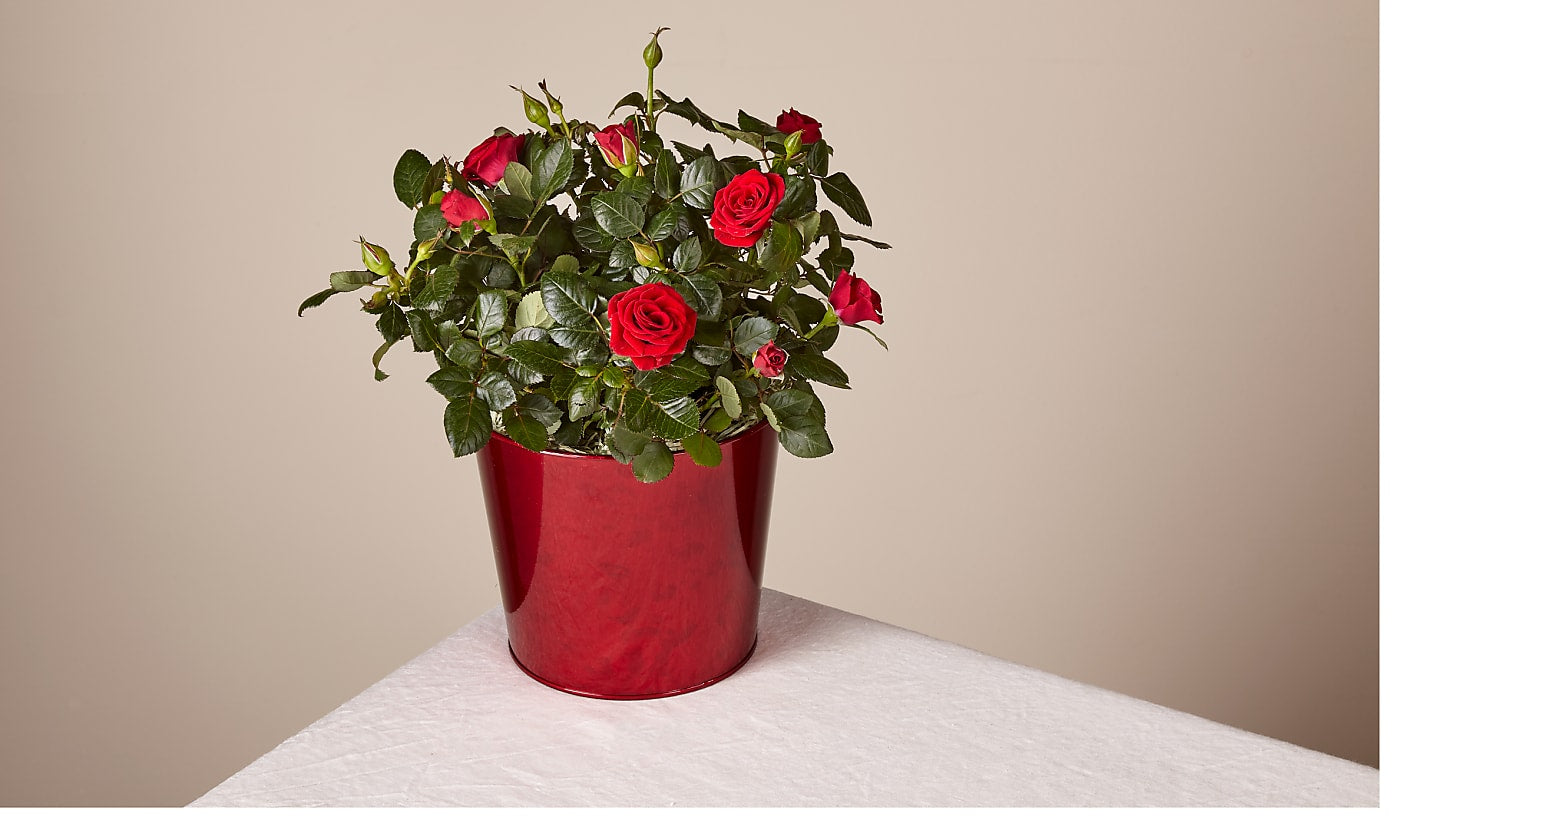 Red Hot Love Rose Plant